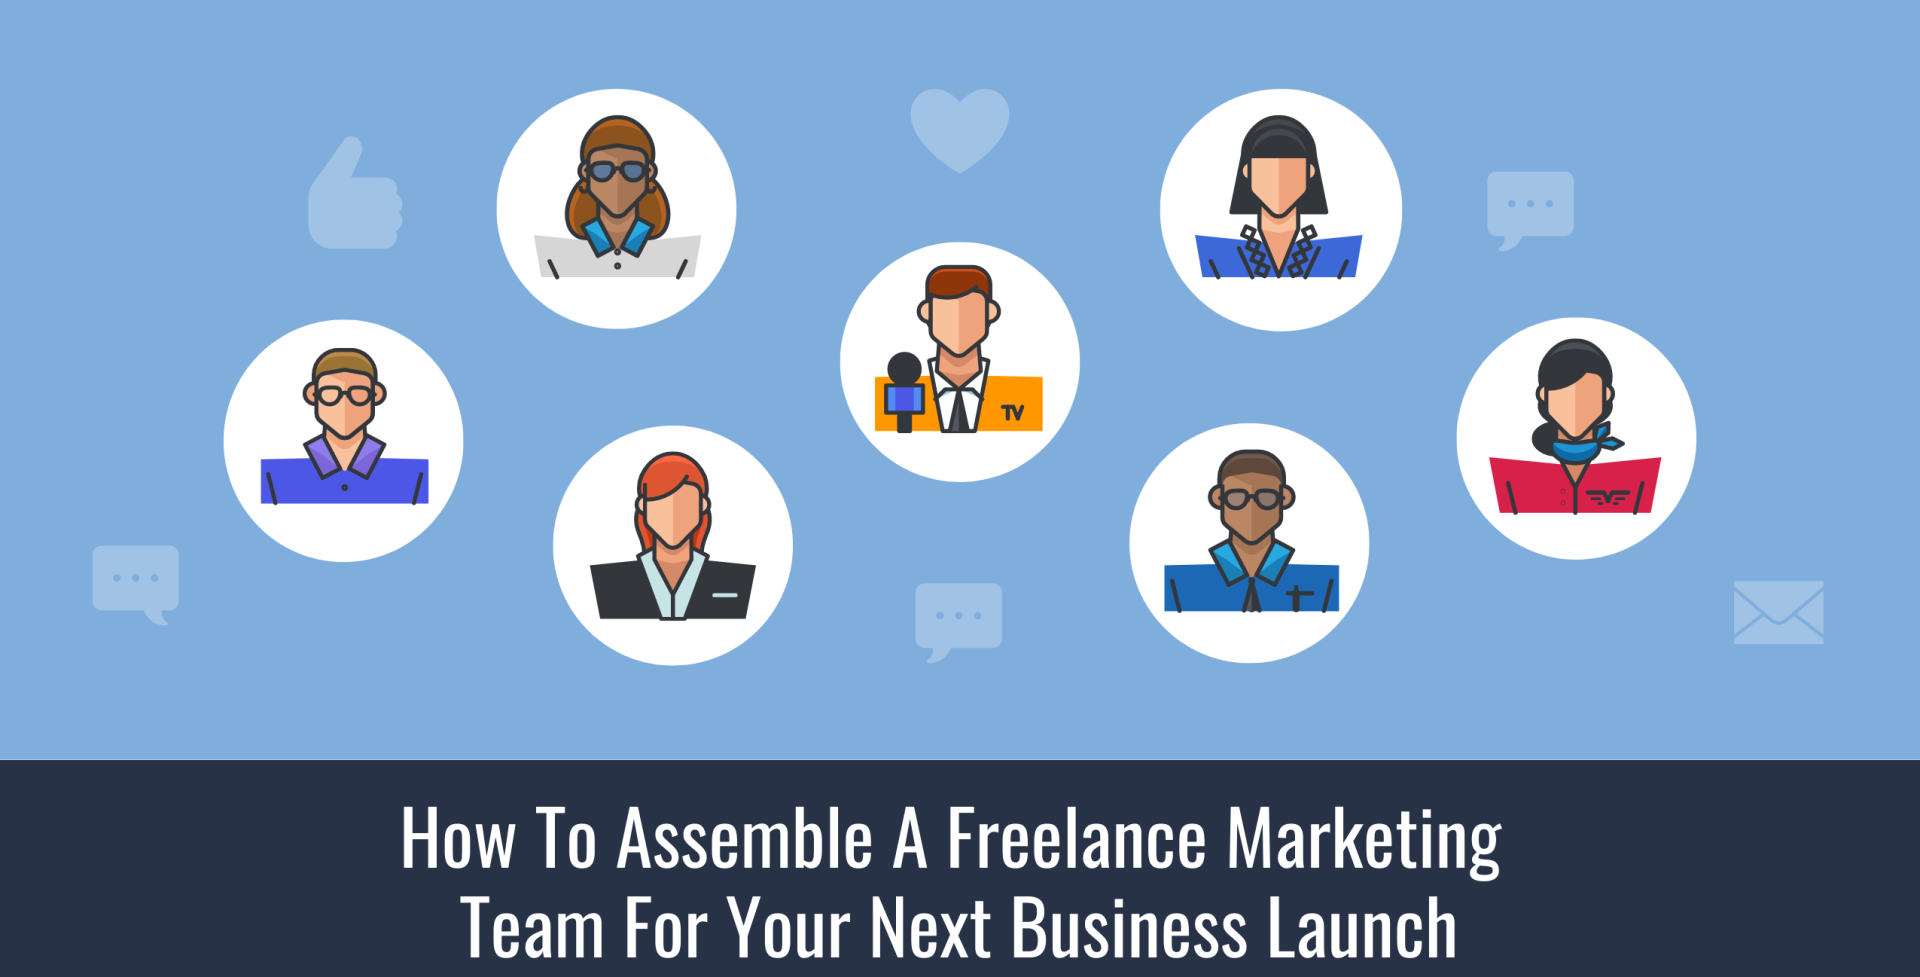 How To Assemble A Freelance Marketing Team For Your Next Business Launch